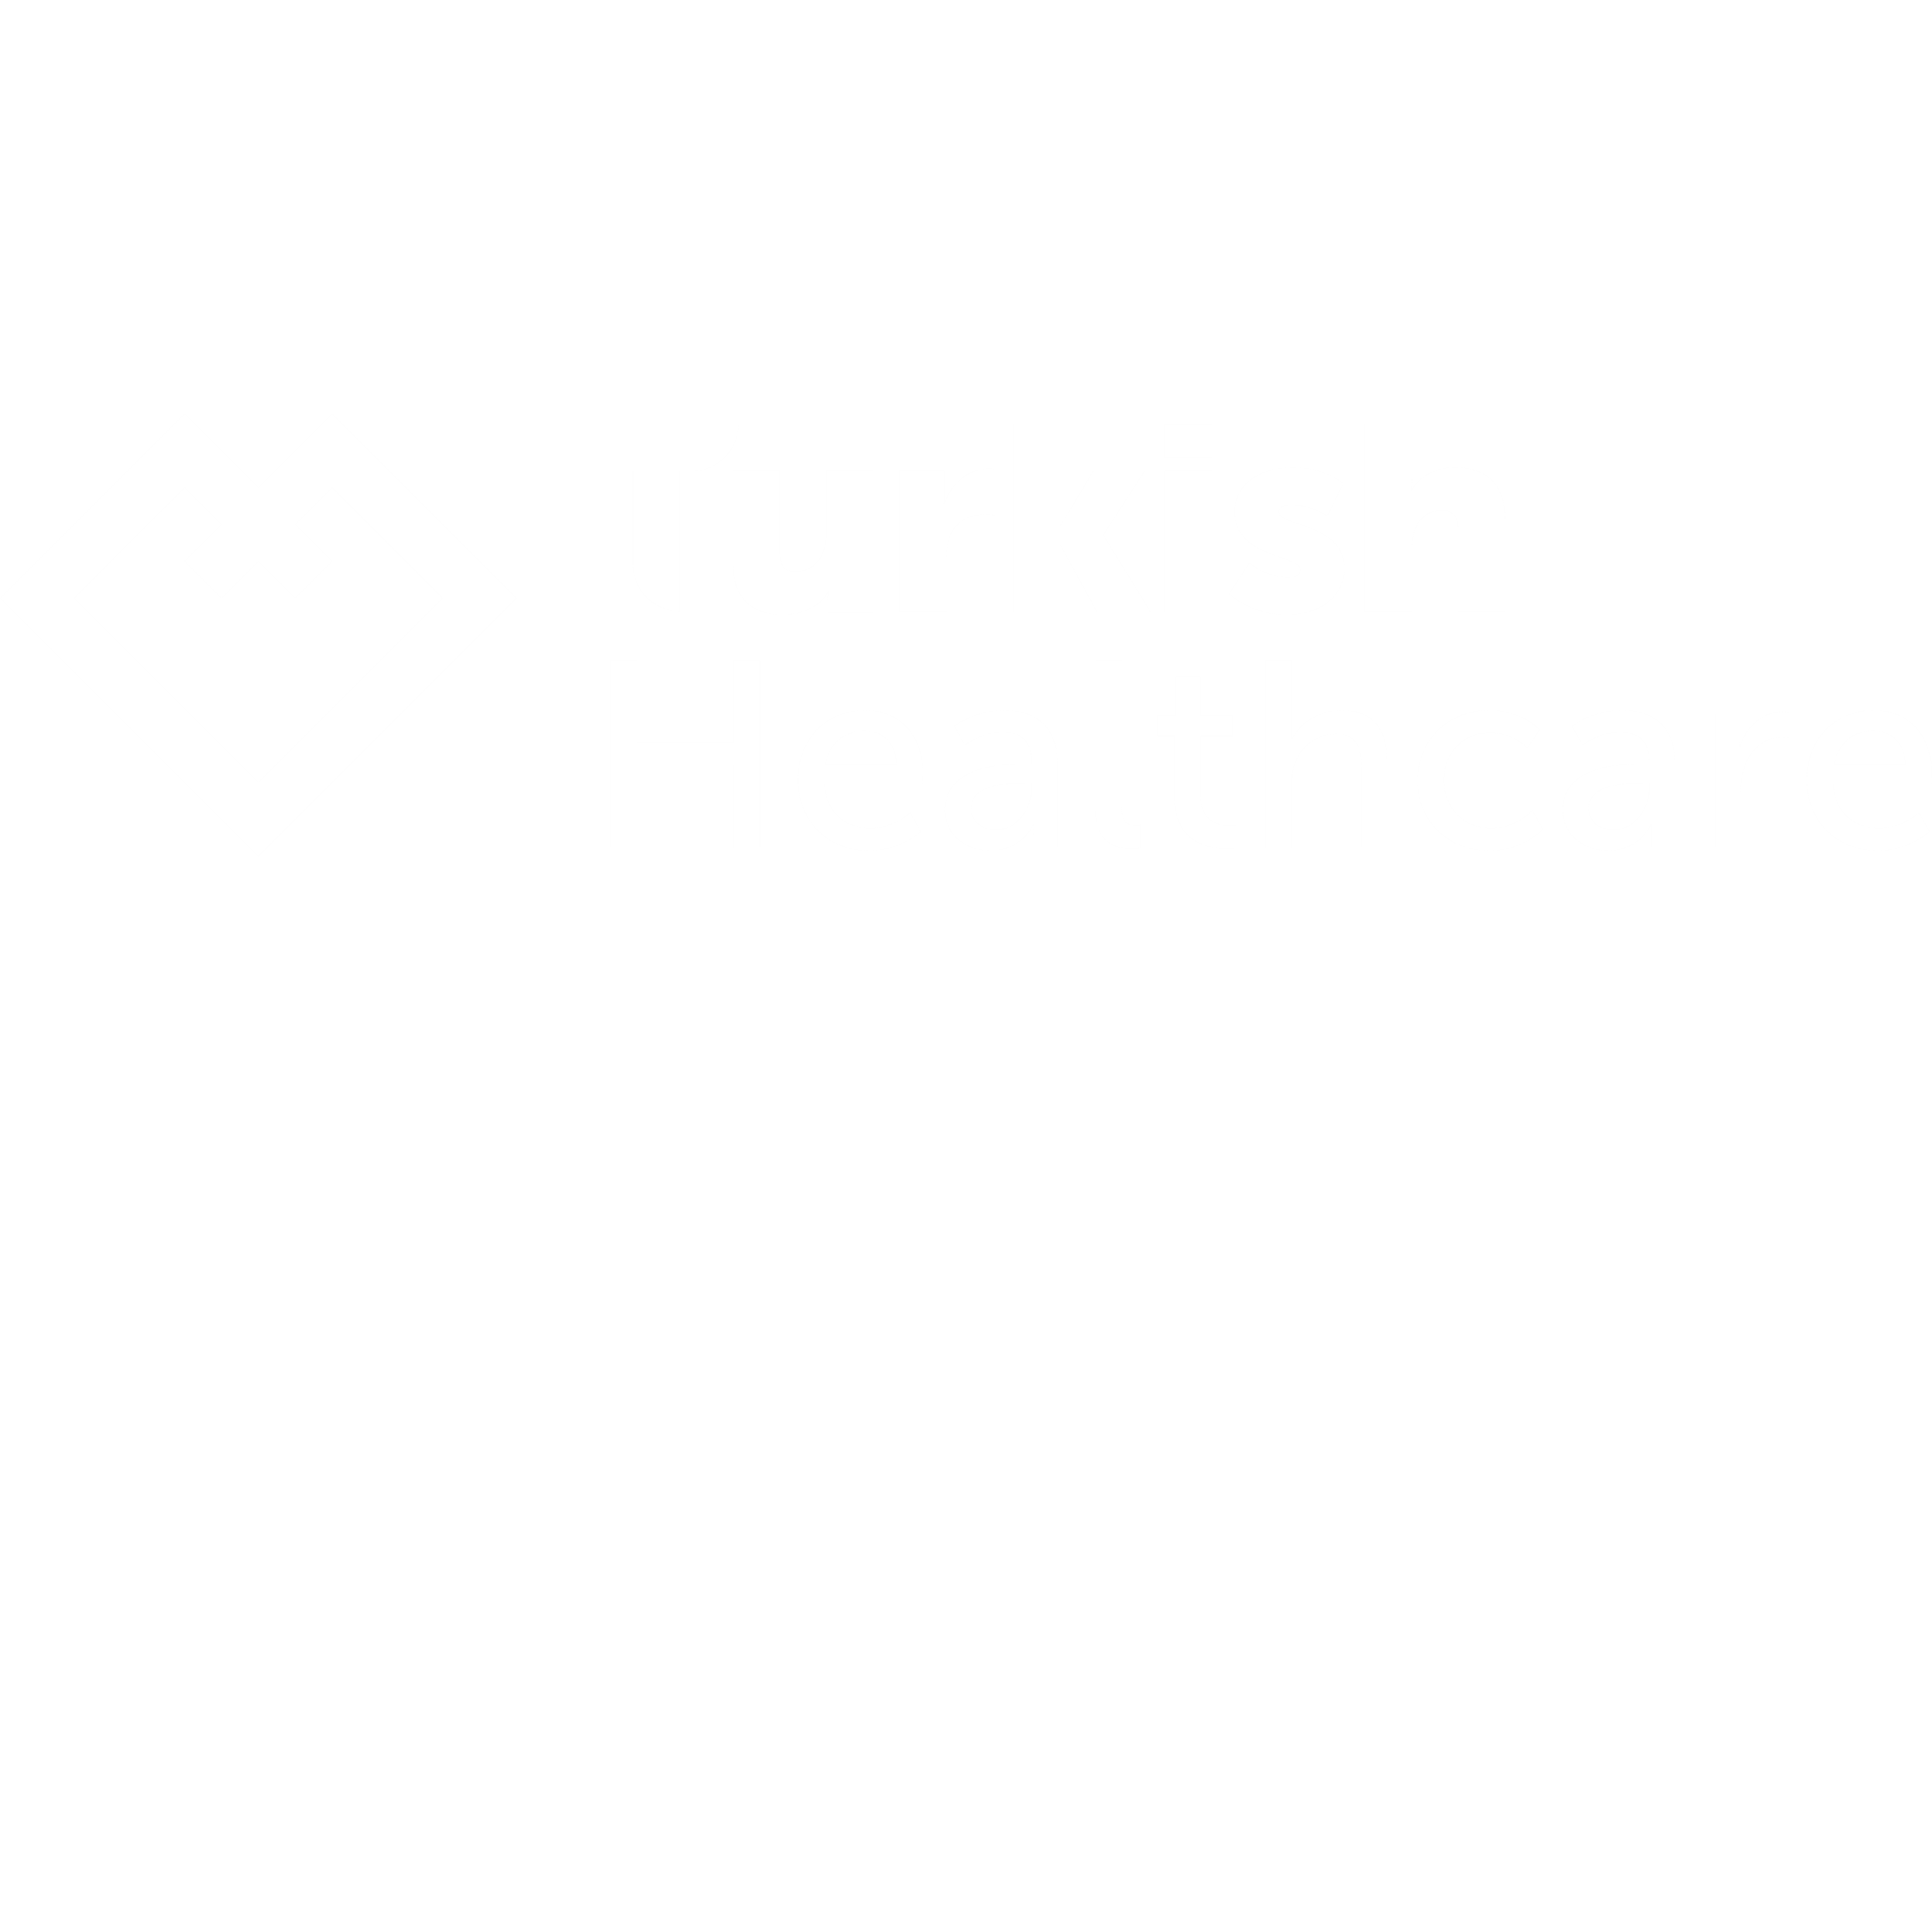 Turkish Healthcare